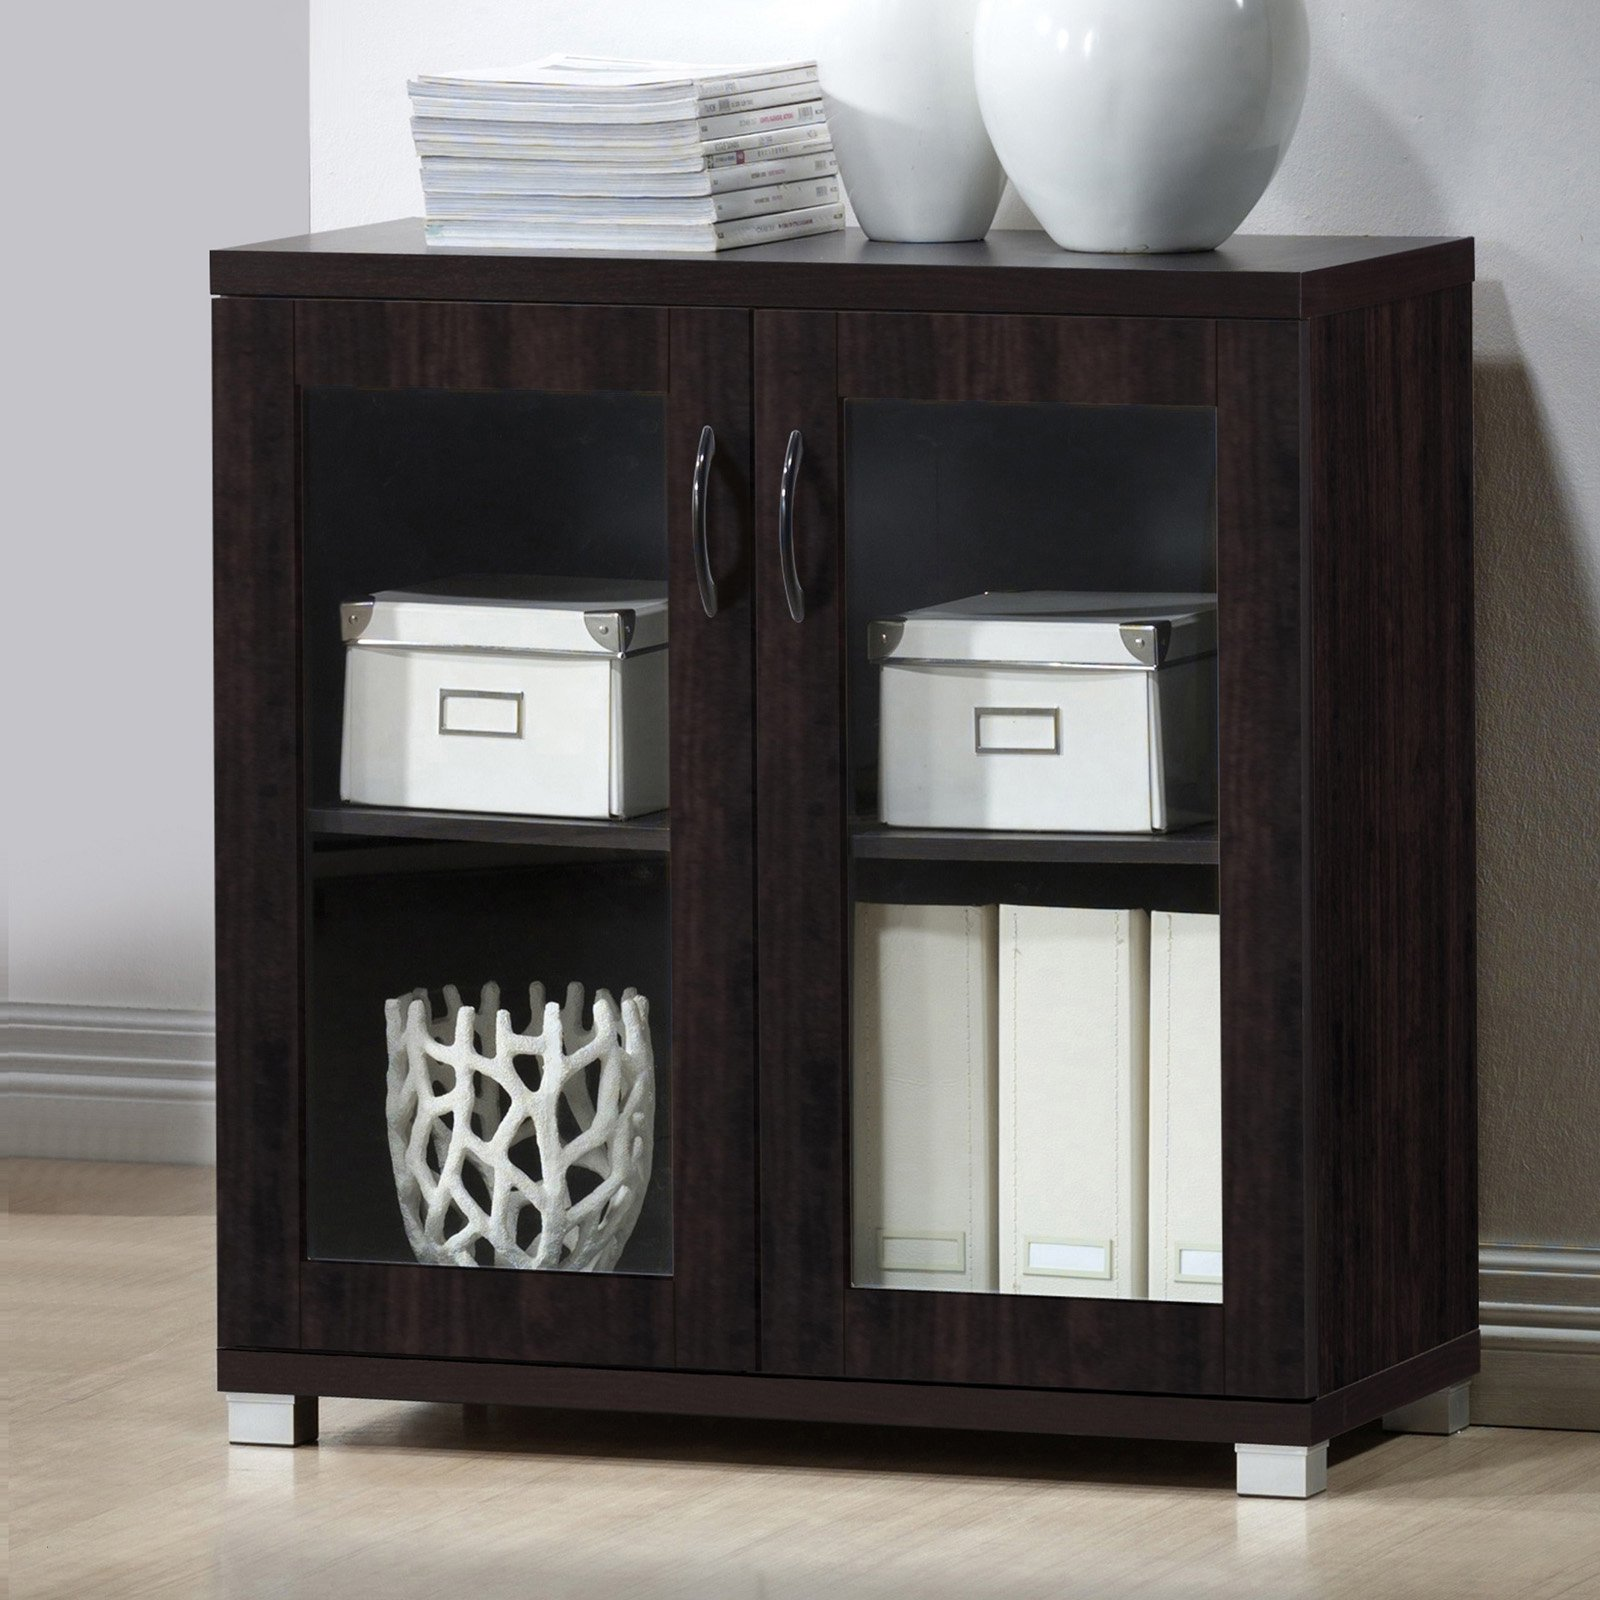 Baxton Studio Zentra Modern and Contemporary Dark Brown Sideboard Storage Cabinet with Glass Doors by Wholesale Interiors